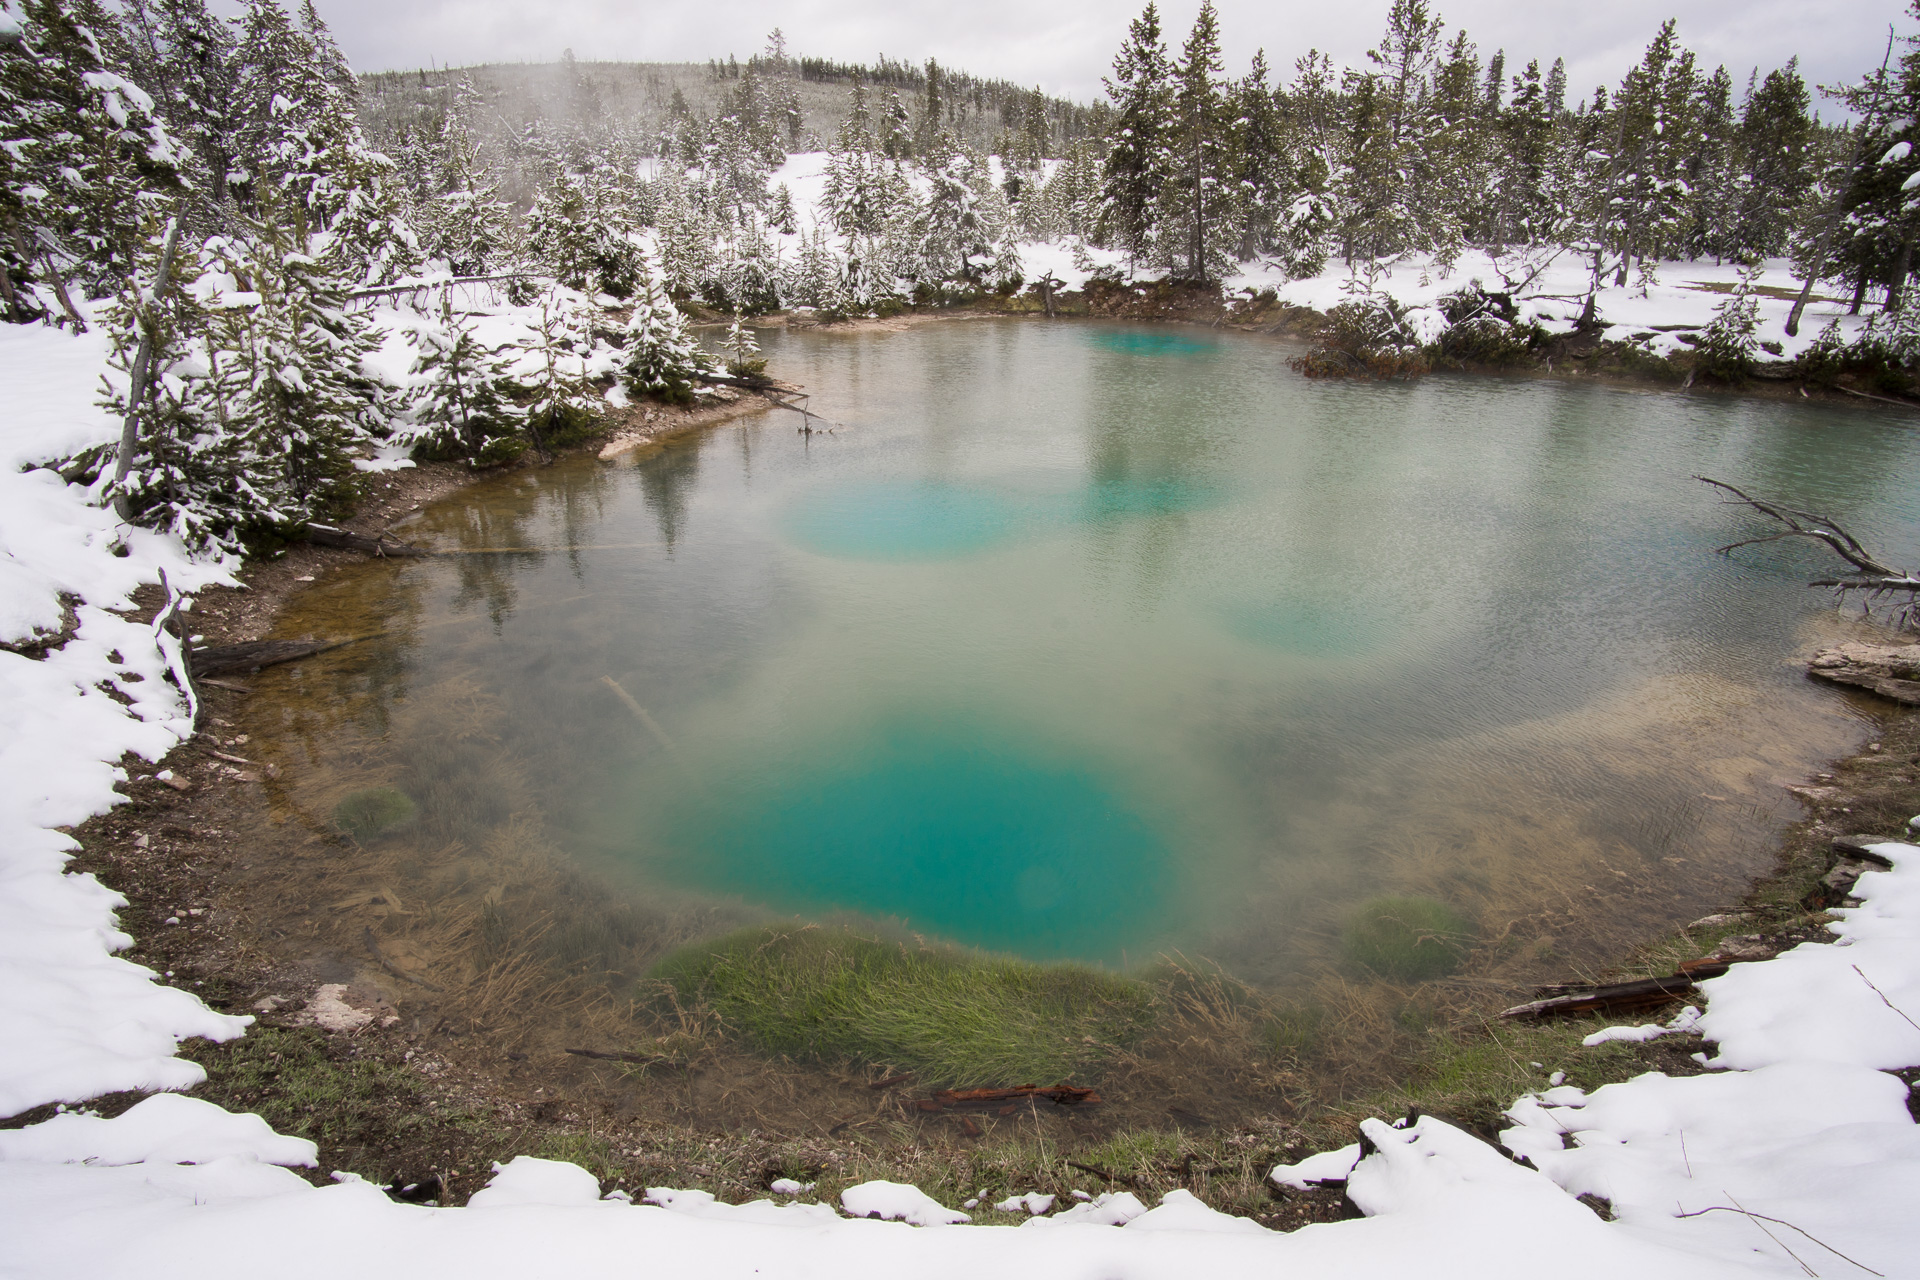 Thermal pool surrounded by snow Yellowstone National Park WY -05622